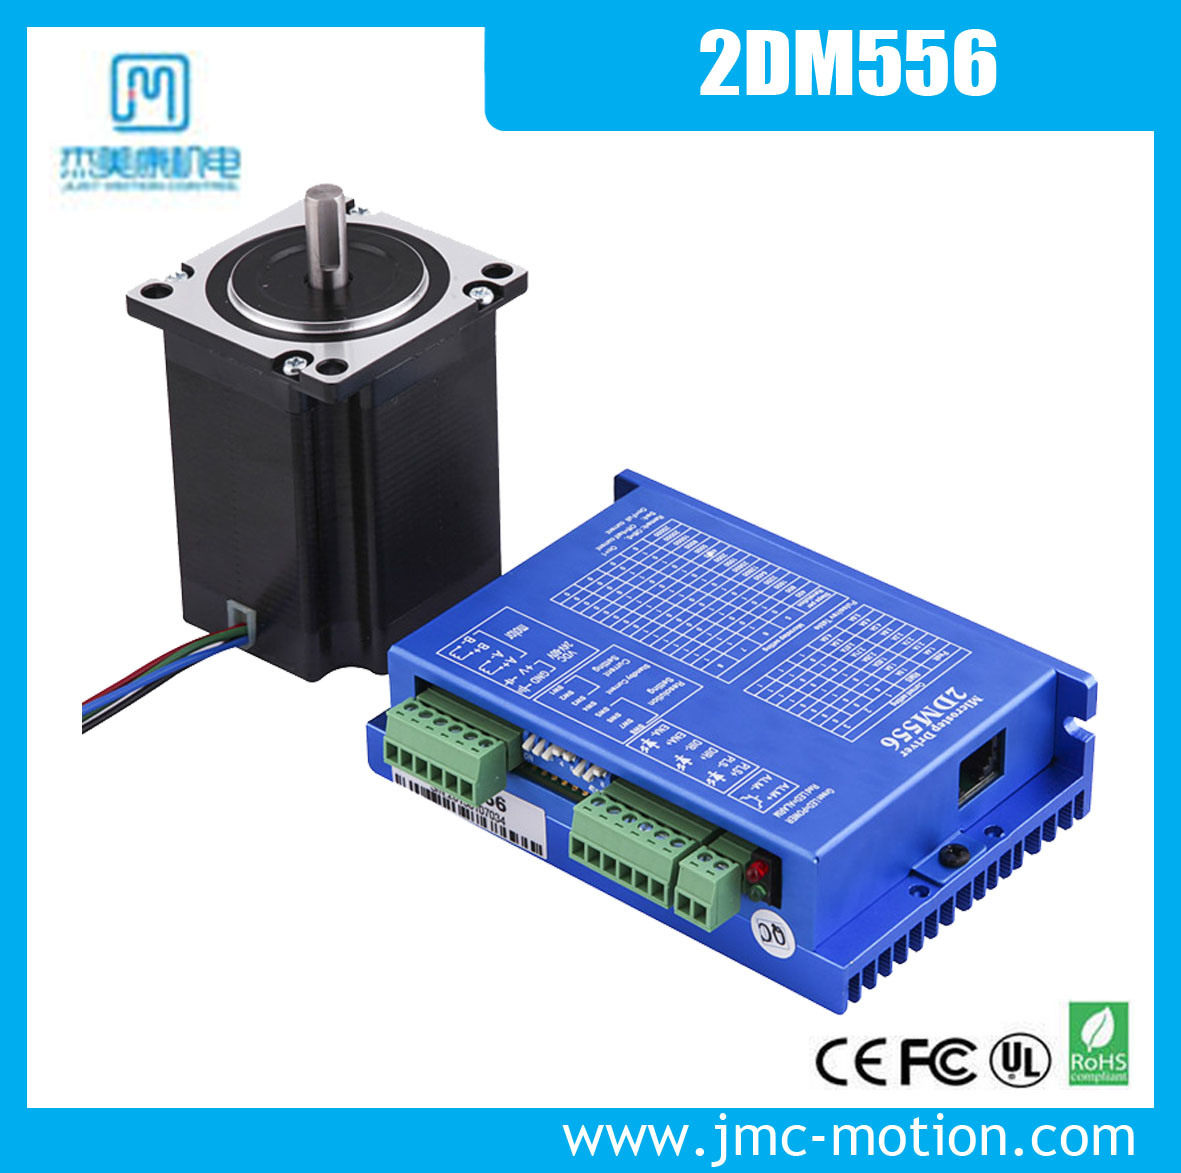 Jmc Brand Advanced Digital Stepper Driver with DSP Technology Equal to Leadshine Dm556